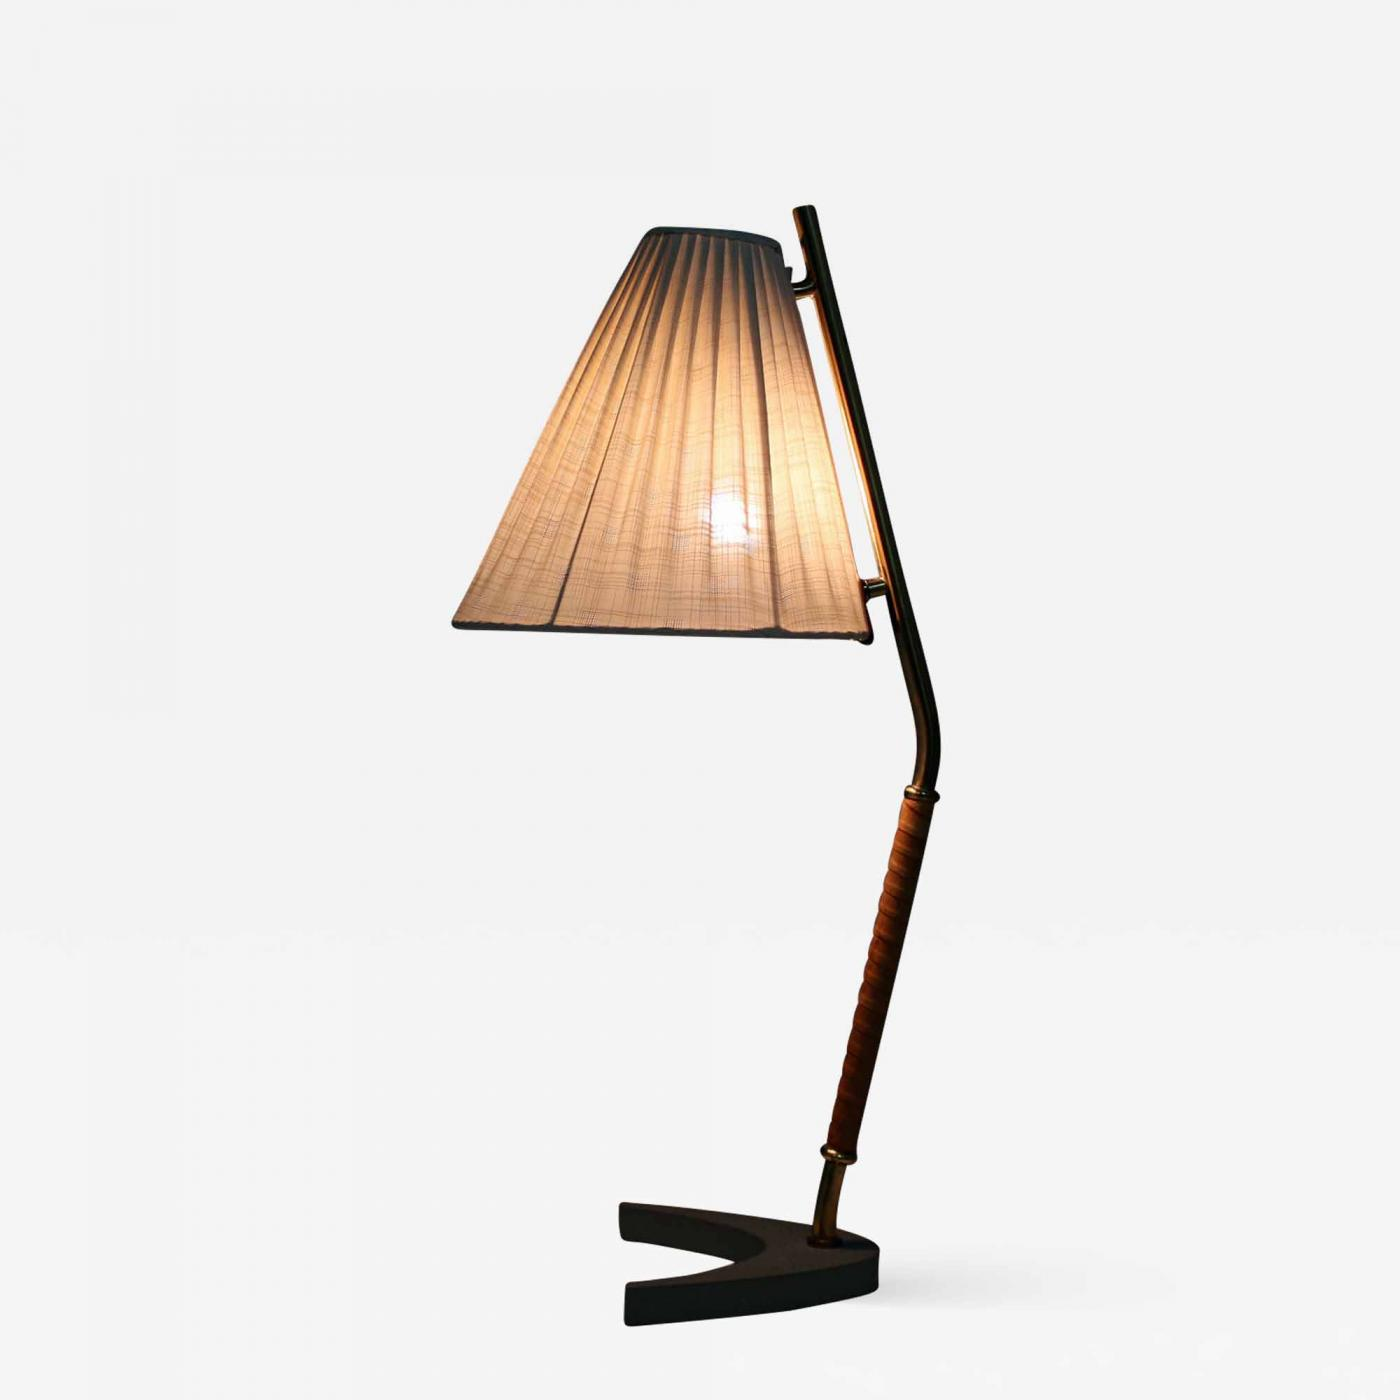 Bohlmarks Ab Scandinavian Midcentury Table Lamp By Bohlmarks 1940s Sweden